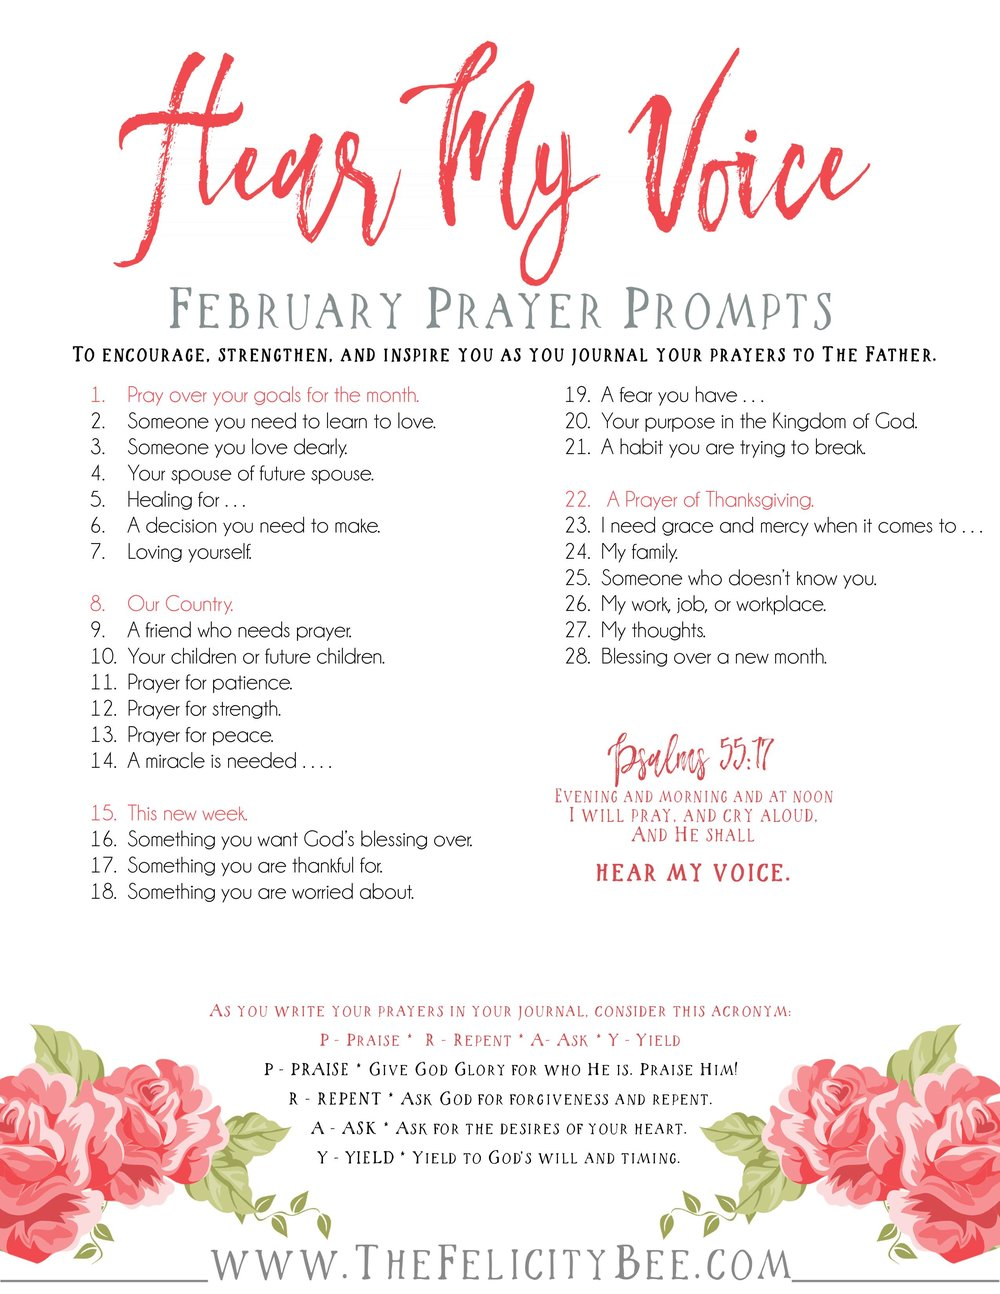 To Download your February Prayer Prompts, CLICK HERE.